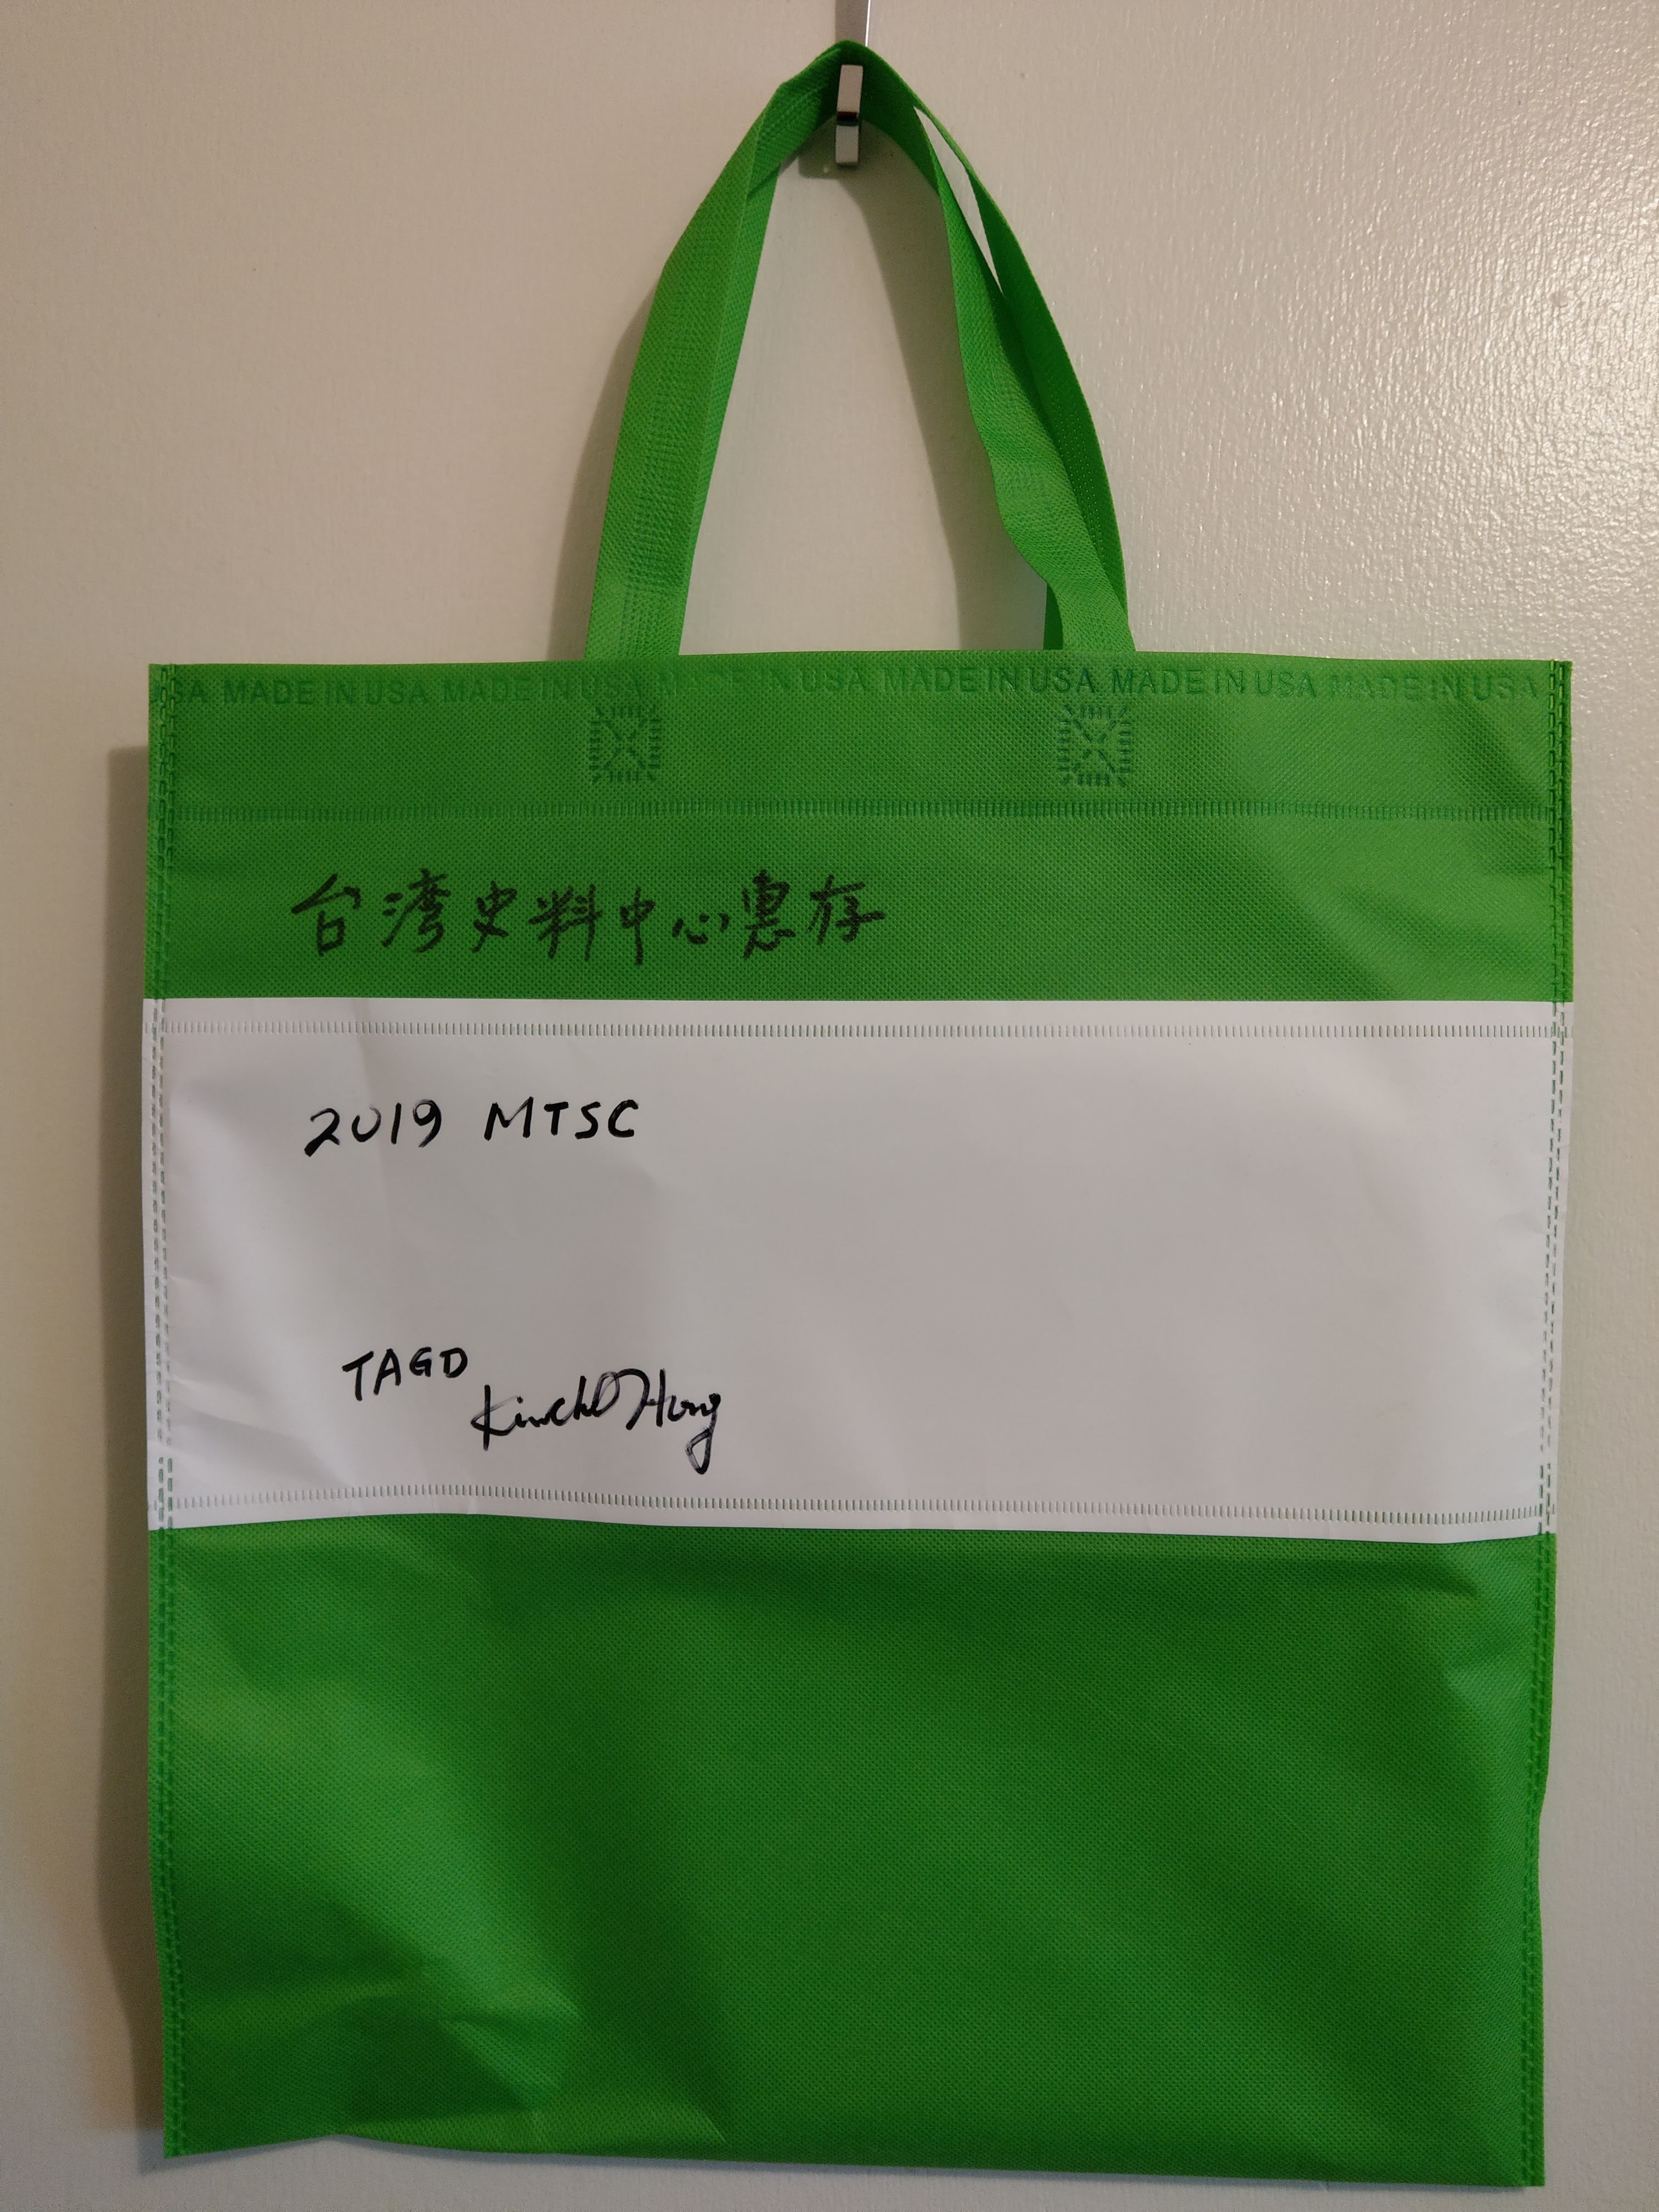 80. Bag of 2019 Midwest Taiwanese Summer Conference, MTSC (美中西部台灣人夏令會)